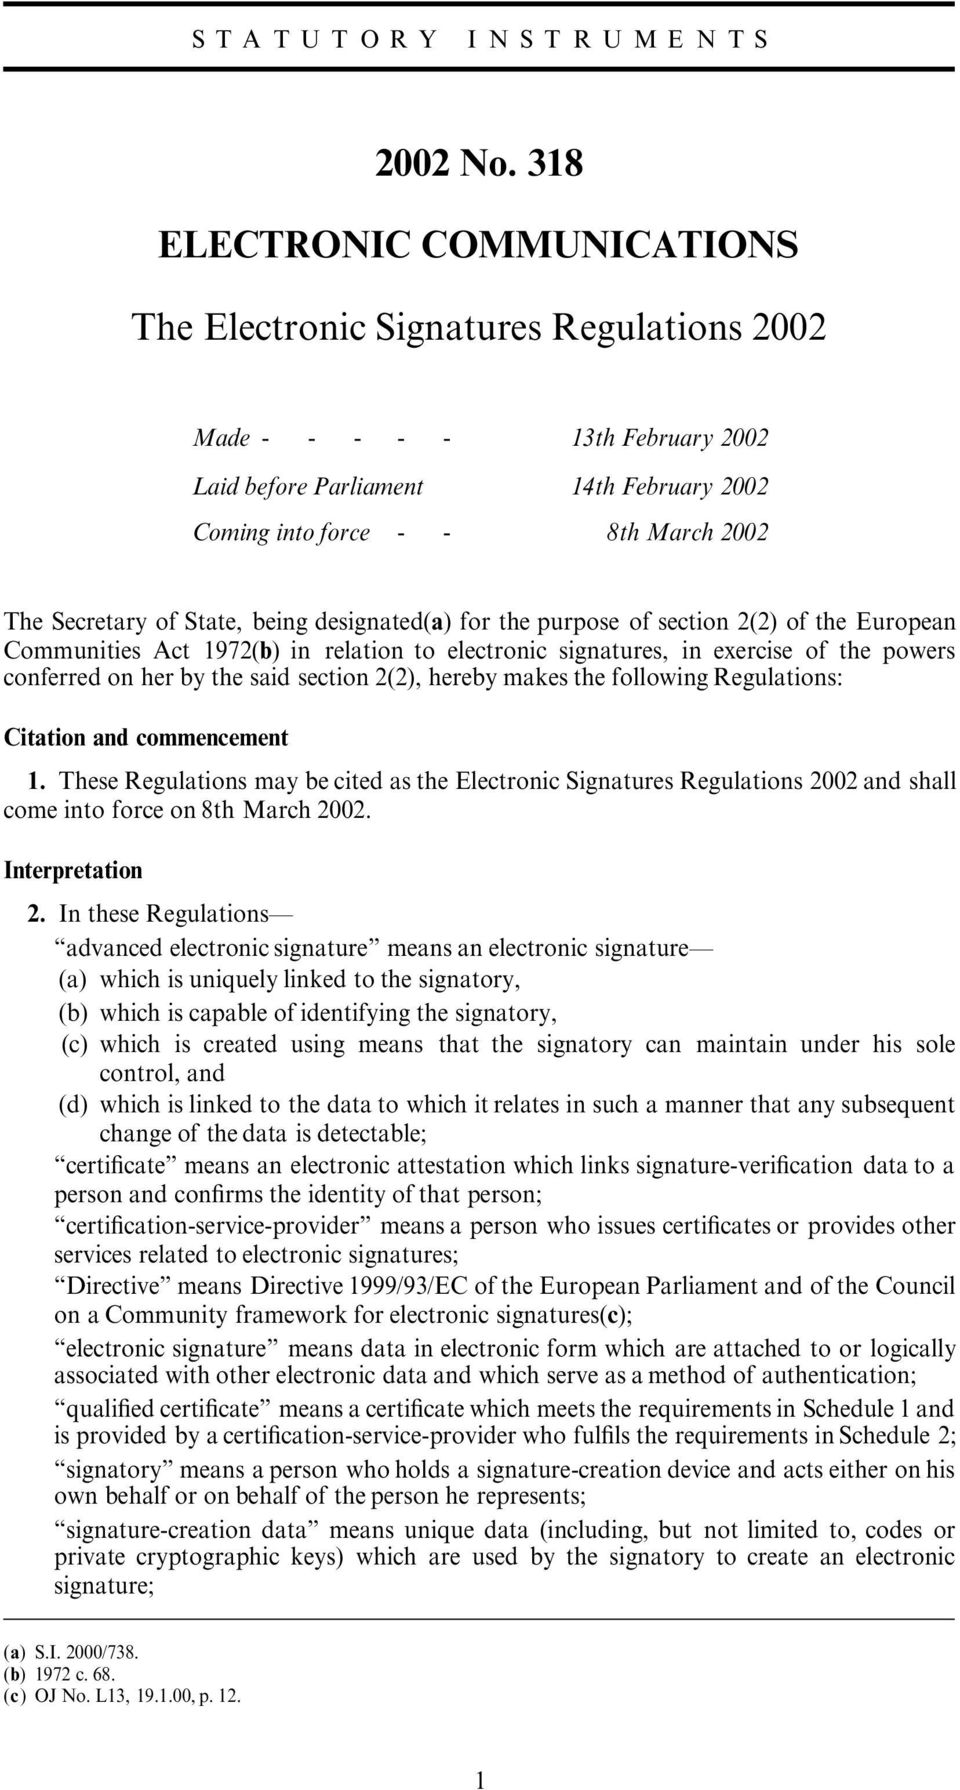 of State, being designated(a) for the purpose of section 2(2) of the European Communities Act 1972(b) in relation to electronic signatures, in exercise of the powers conferred on her by the said